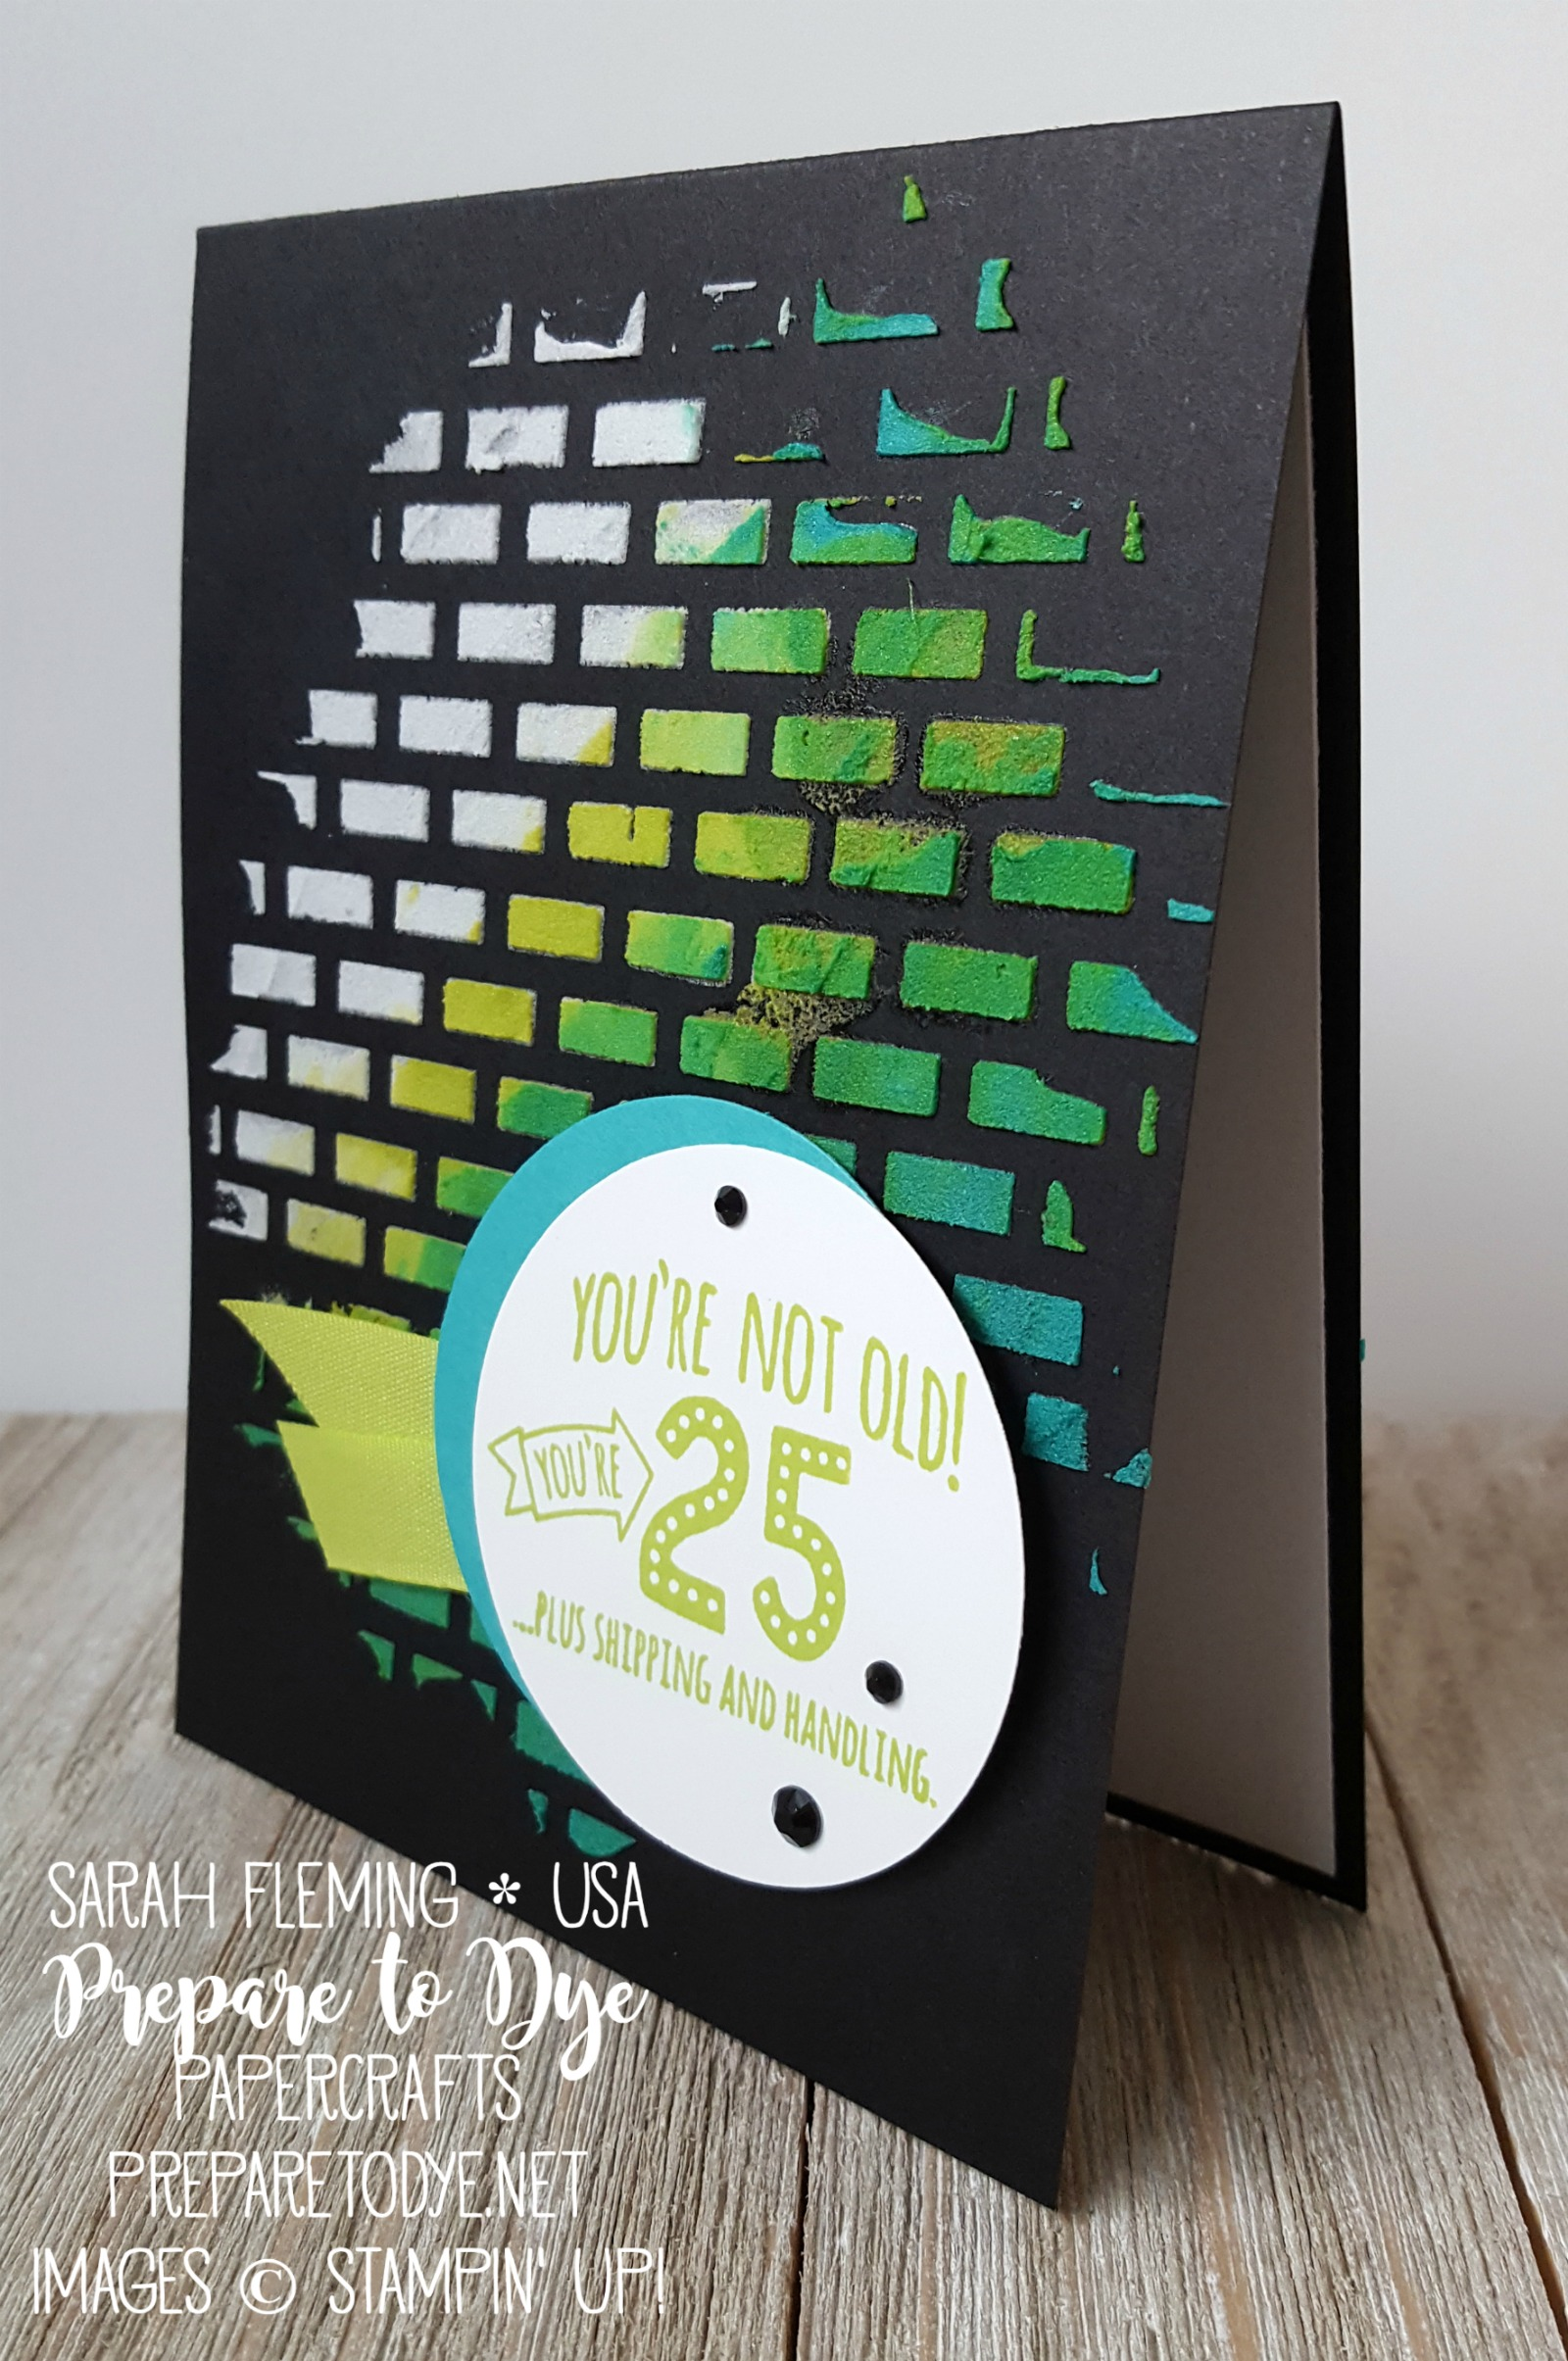 Stampin' Up! Five For All stamp set, embossing paste, Pattern Party Decorative Masks, Lemon-Lime Twist Finely Woven Ribbon - handmade funny birthday card - #IIBH - Sarah Fleming - Prepare to Dye Papercrafts